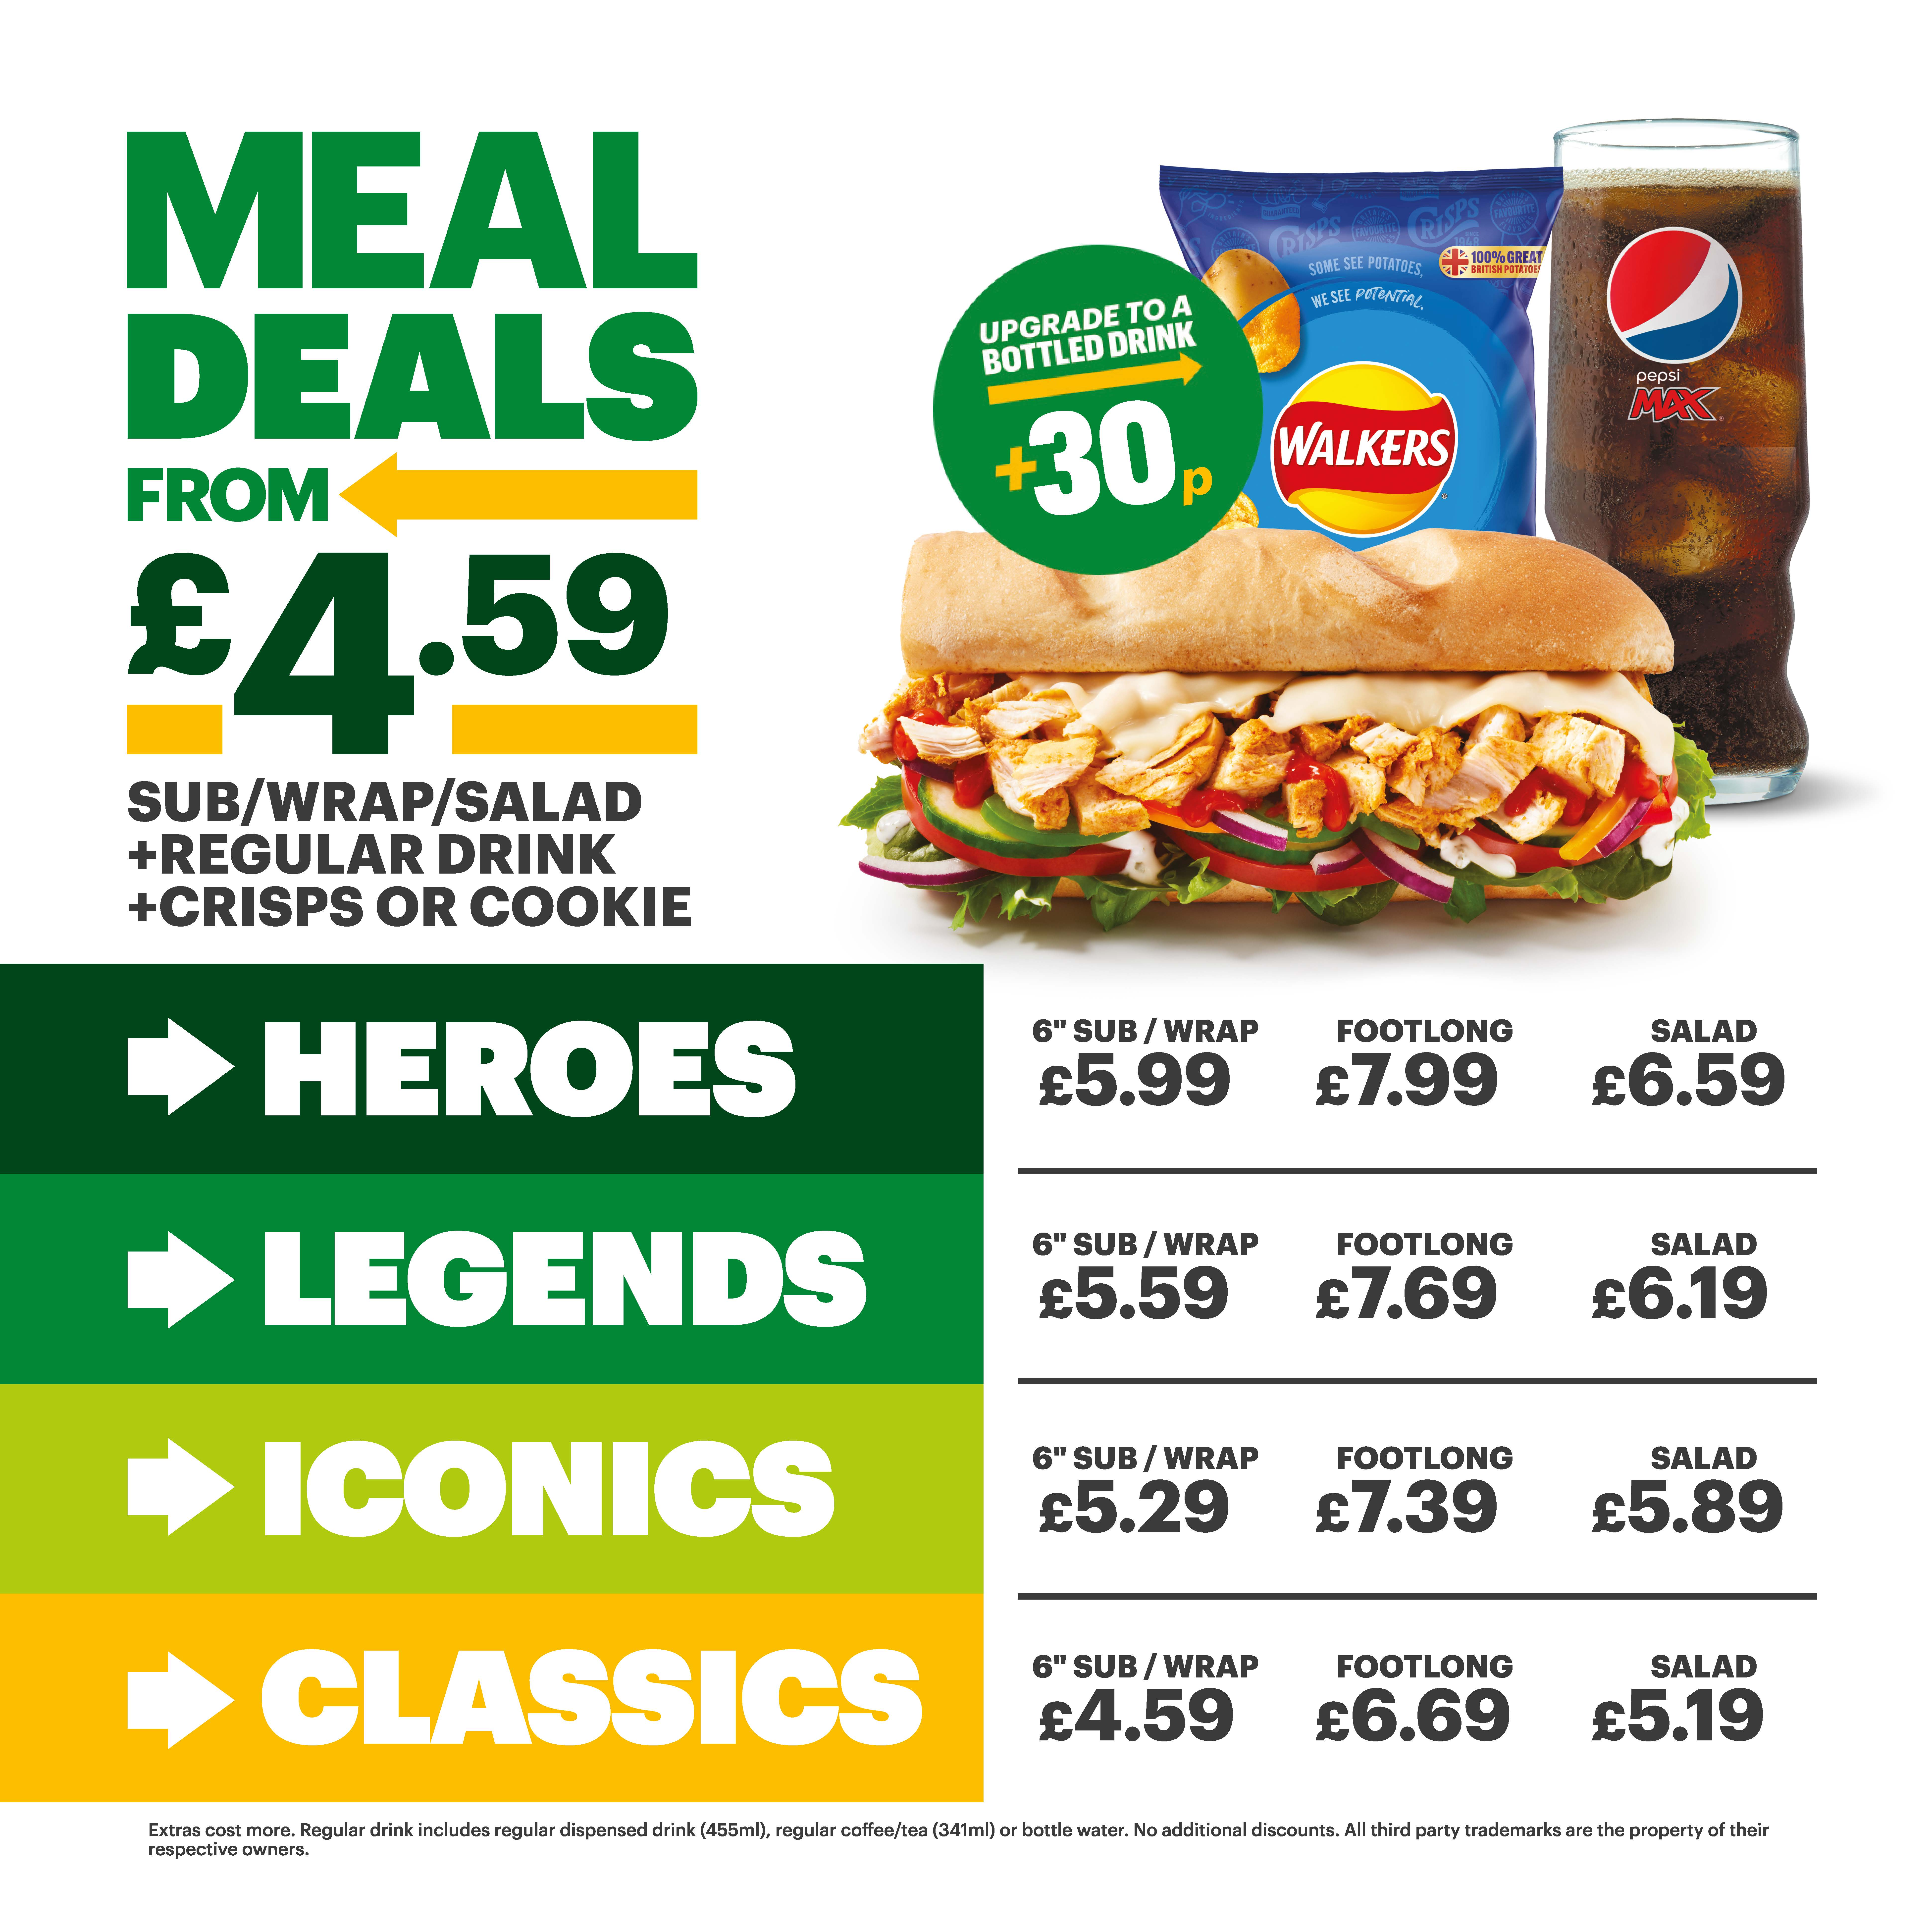 Lunch at Subway from £4.59